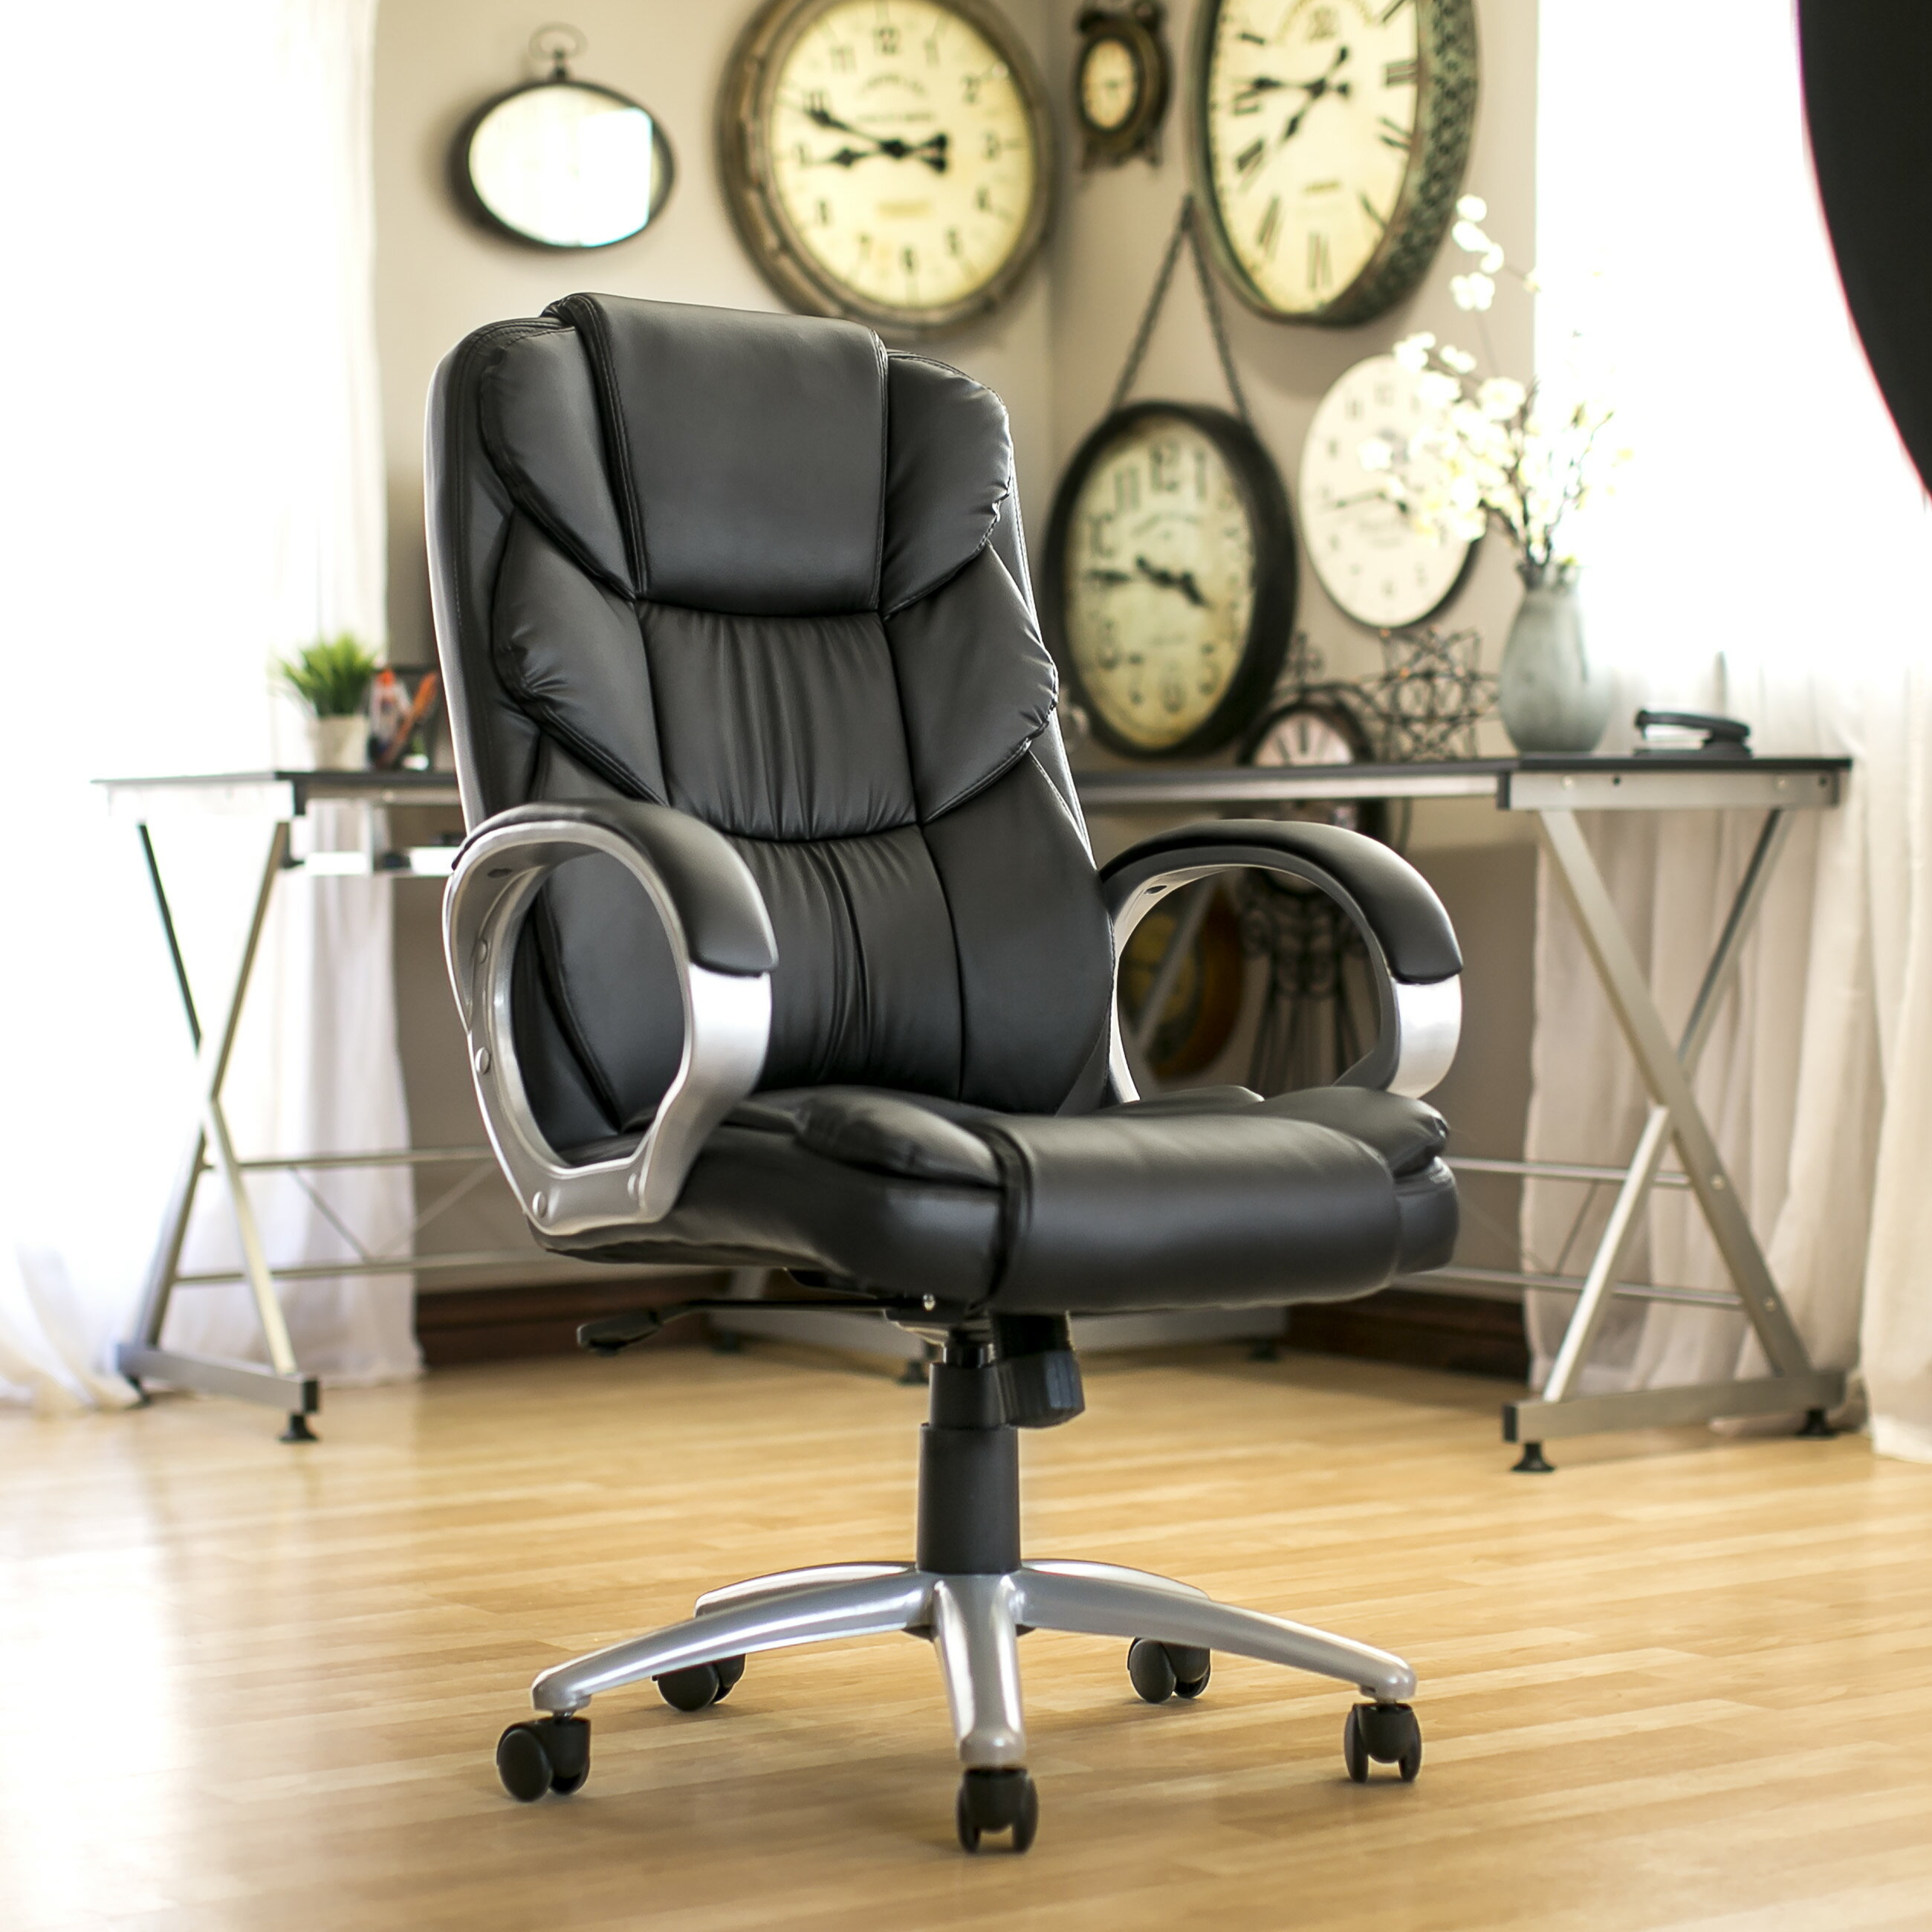 Best Choice Products Ergonomic PU Leather High Back Office Chair, Black 1